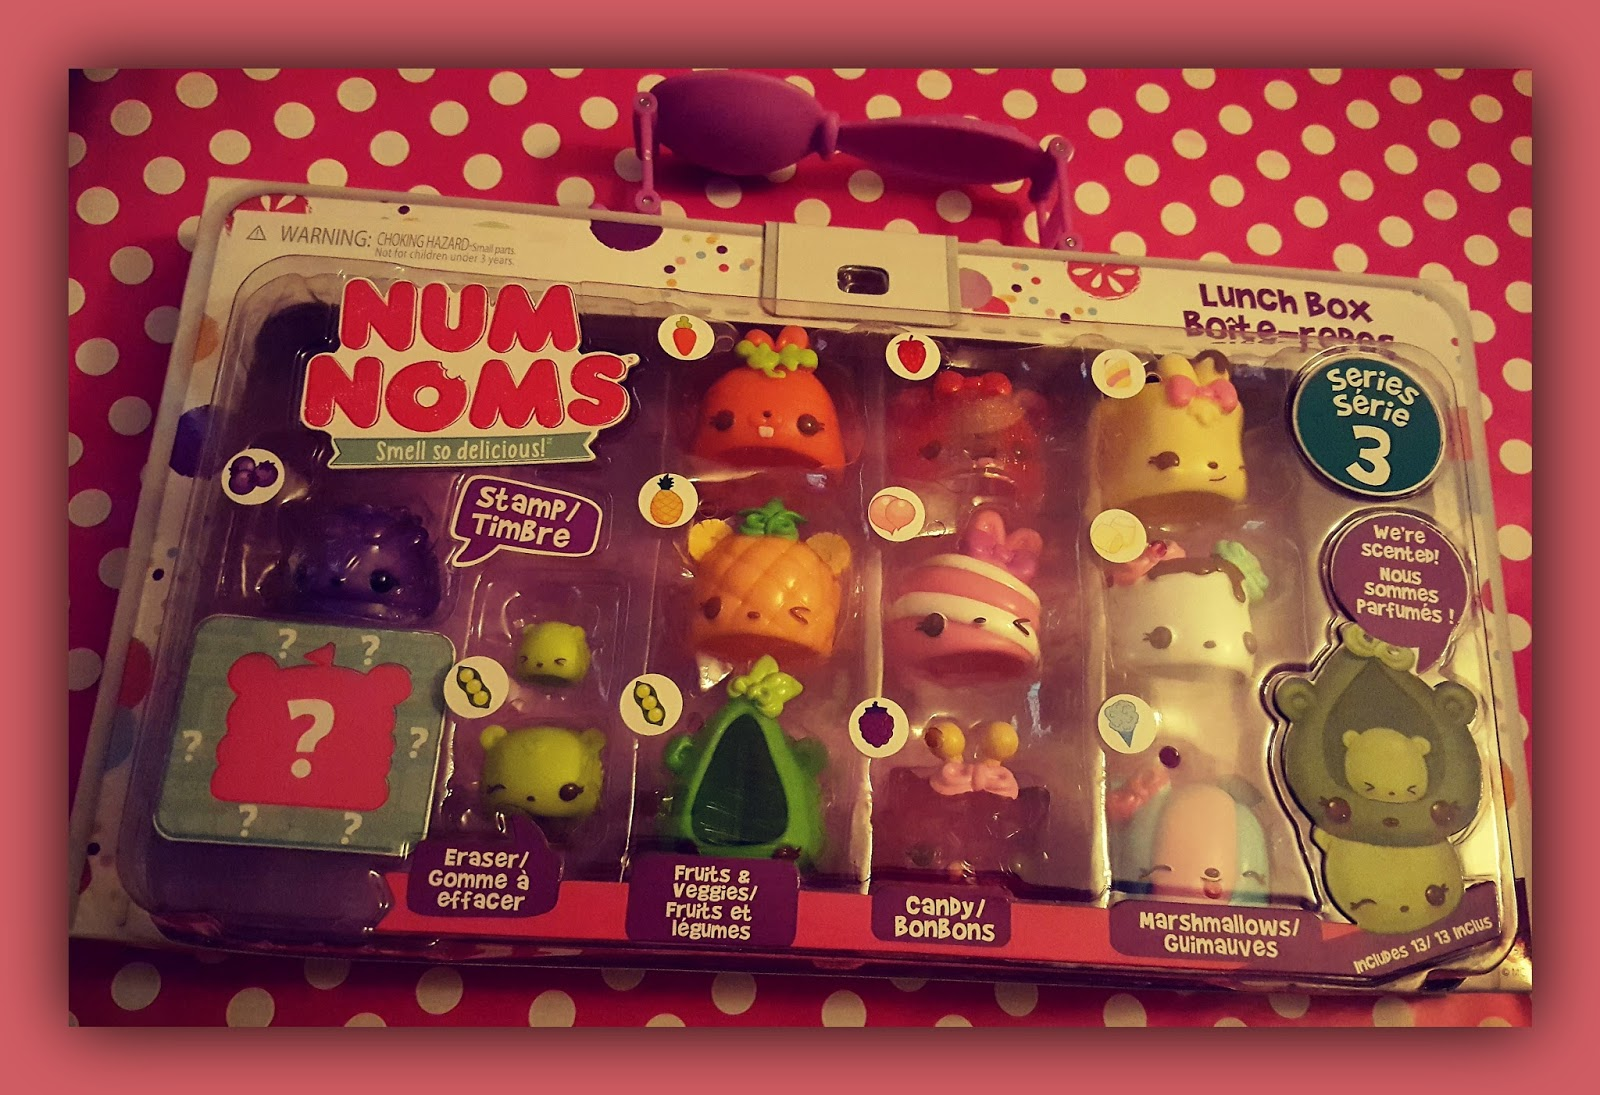 ... Loved Num Noms, Beastie Was Sent A Wonderful Lunch Box Deluxe Pack From  The New Range To Experience The Fresh New Scents And The And The New  Combination ...